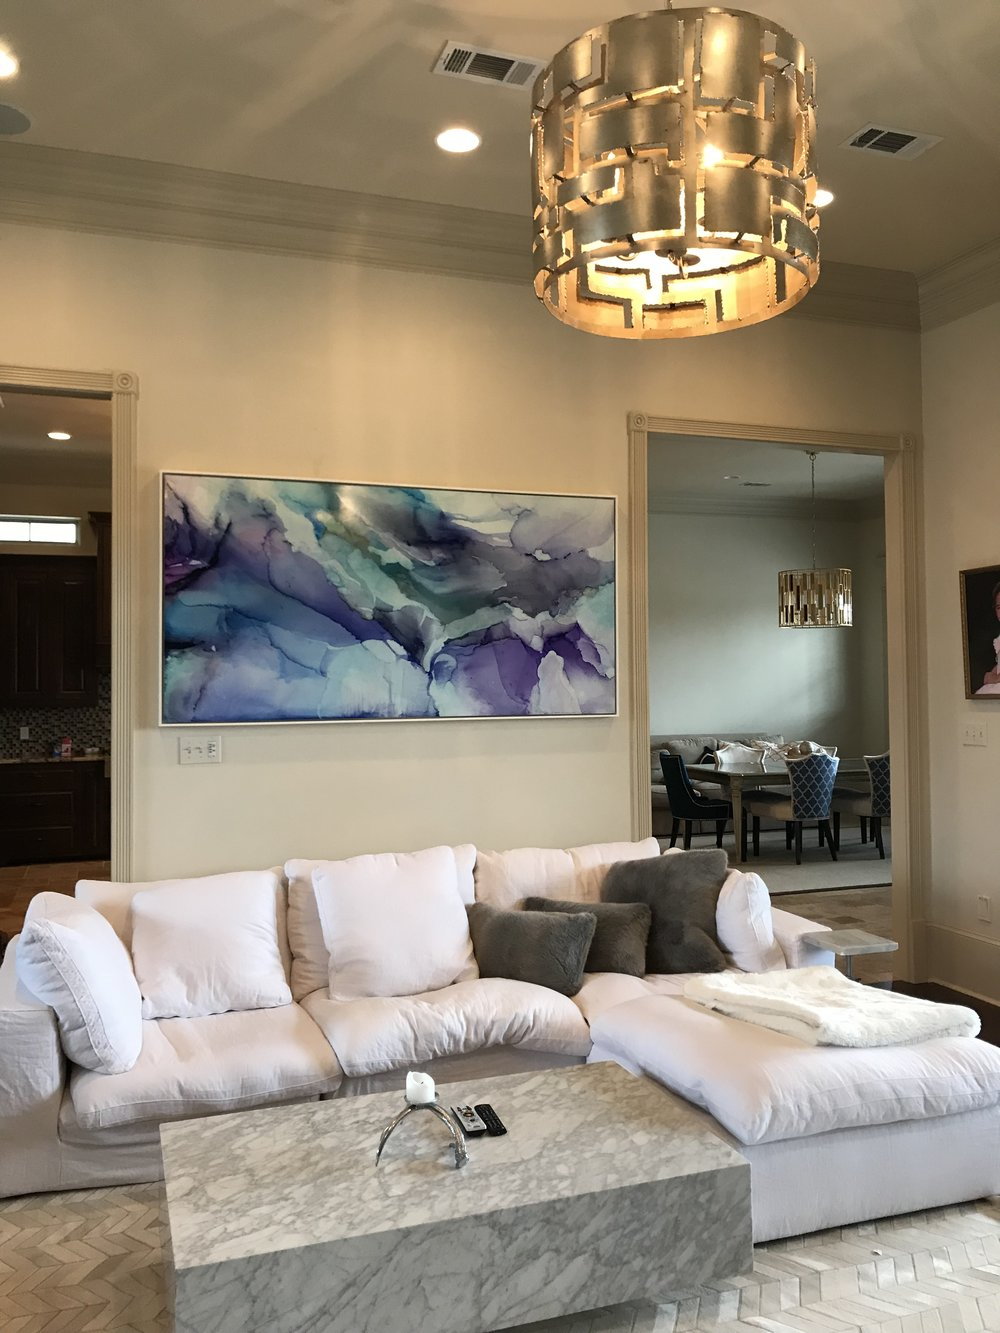 """Wingspan II,40""""x80"""", installed in private residence, Baton Rouge, La. Photo courtesy FW Gallery."""